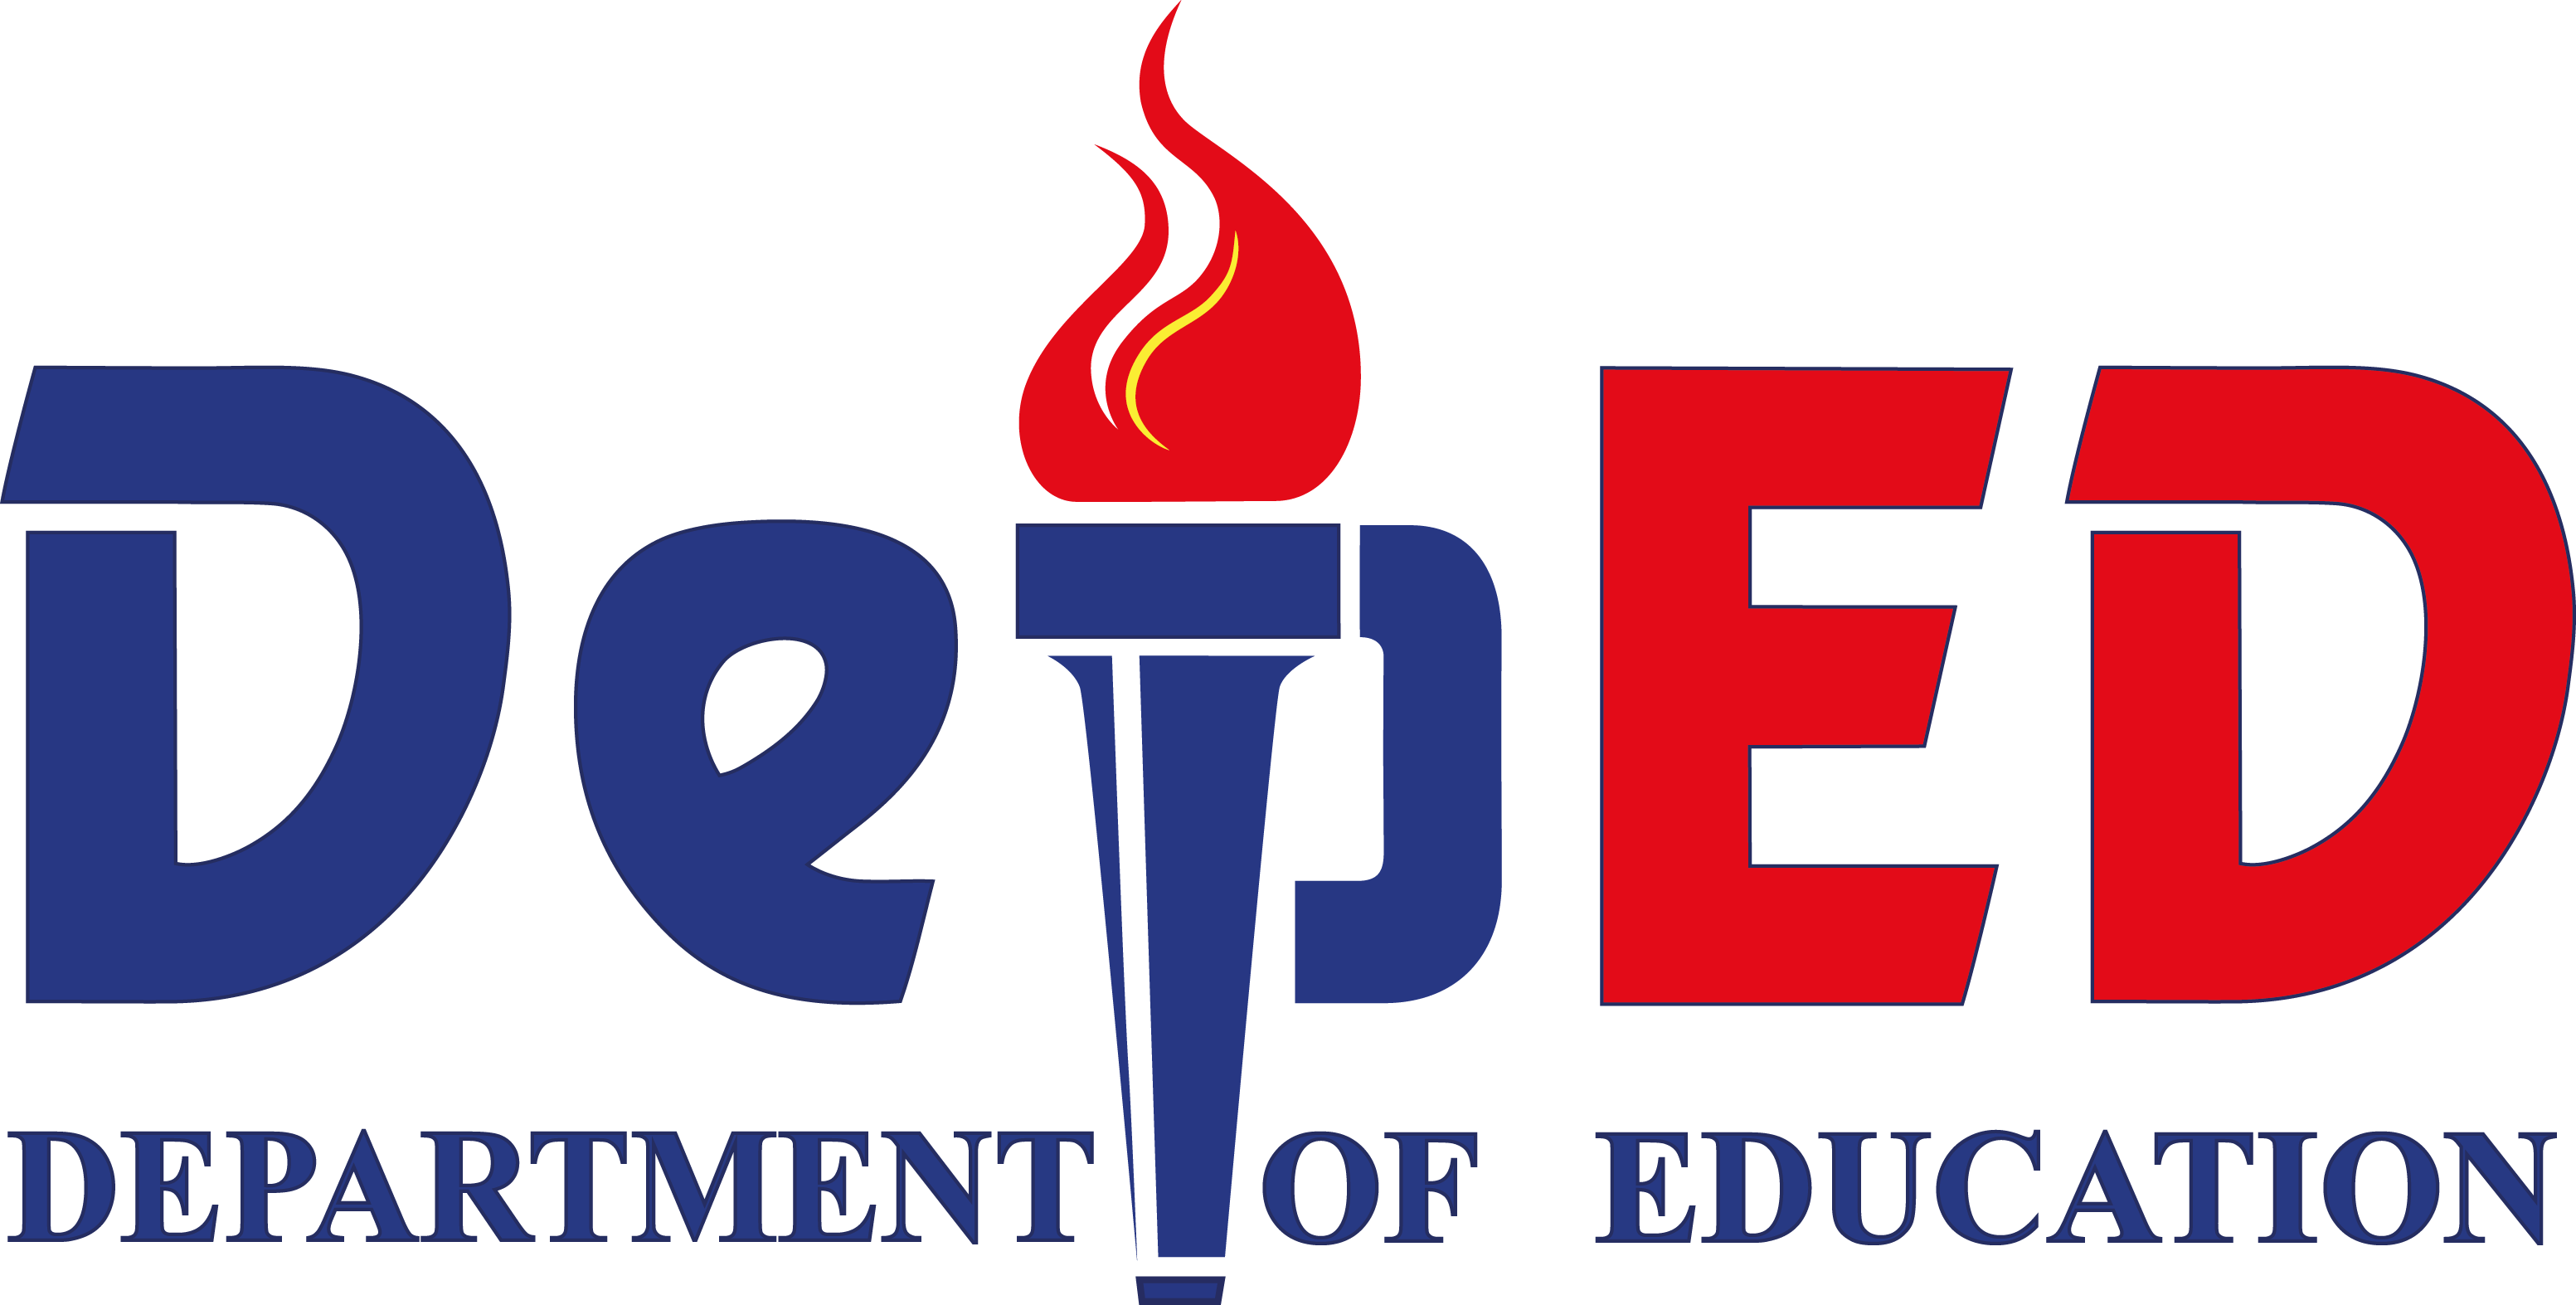 DepEd Logo [Department of Education Philippines.